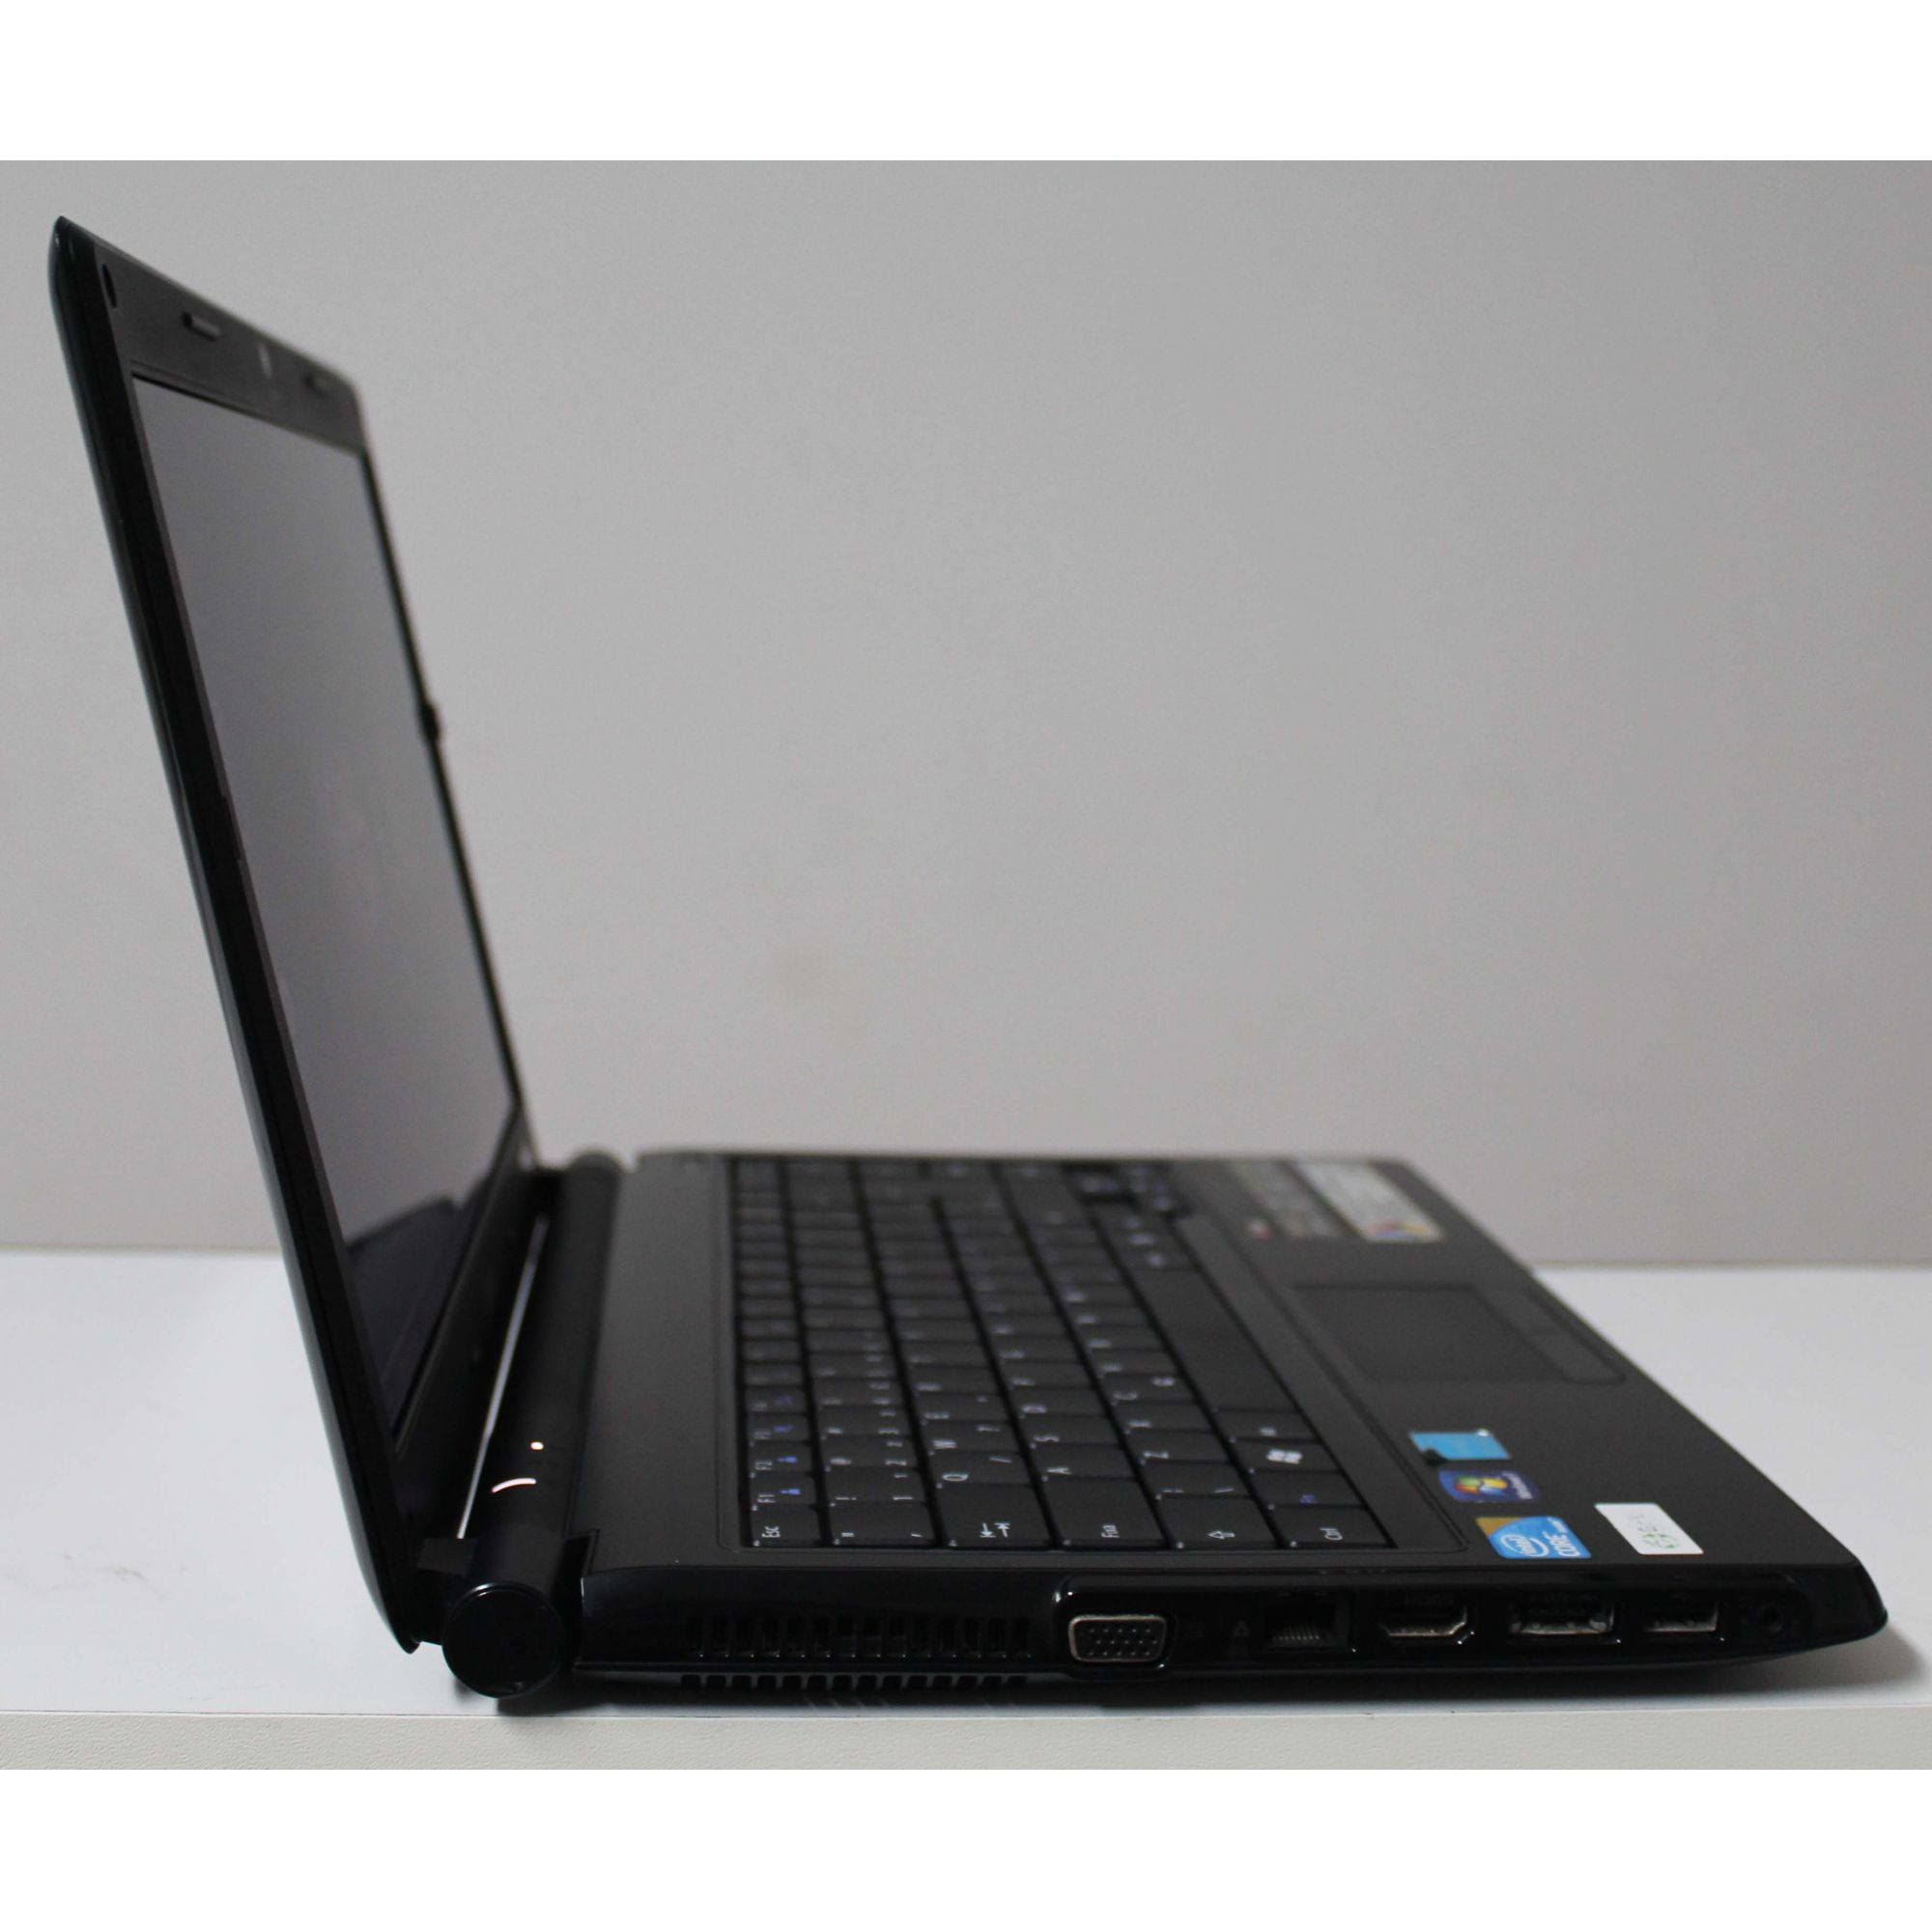 "Notebook LG A410 14"" Intel Core i3 2.67GHz 4GB HD-320GB (Não enviamos)"